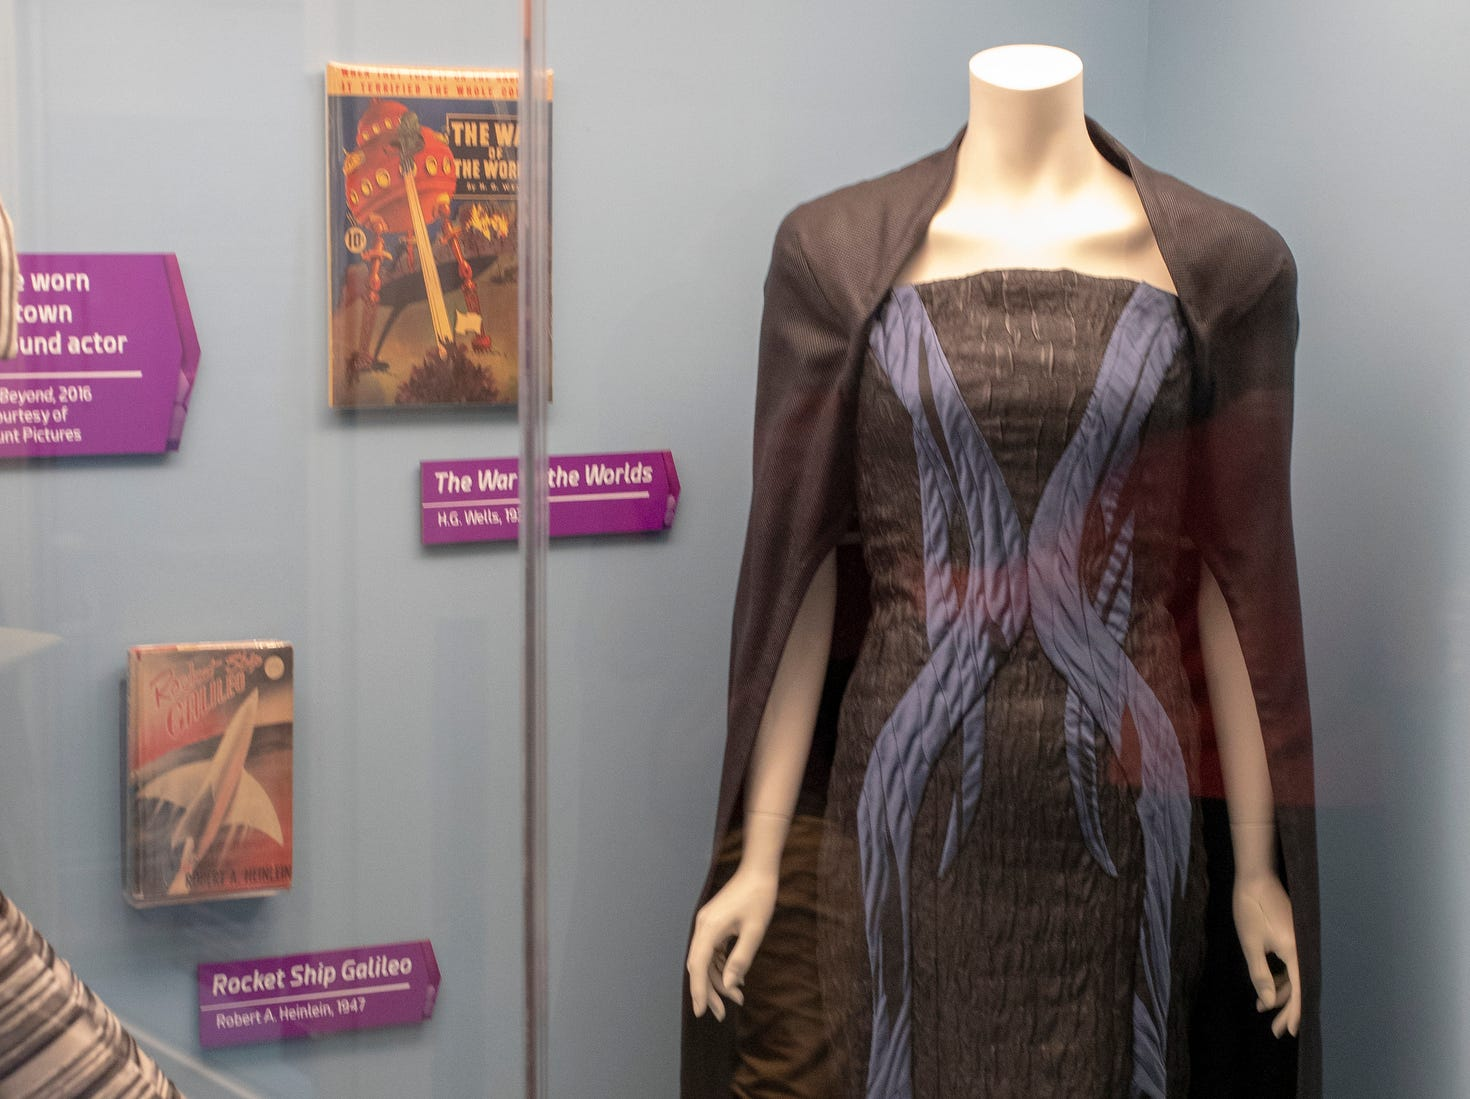 """Clothing and books on display that have been inspired by Star Trek are seen at The Children's Museum of Indianapolis, Wednesday, Jan. 23, 2019. The """"Star Trek: Exploring New Worlds"""" exhibit is made up of set pieces, ship models and outfits used during various Star Trek shows and movies and is on display at the museum from Feb. 2 through April 7, 2019."""